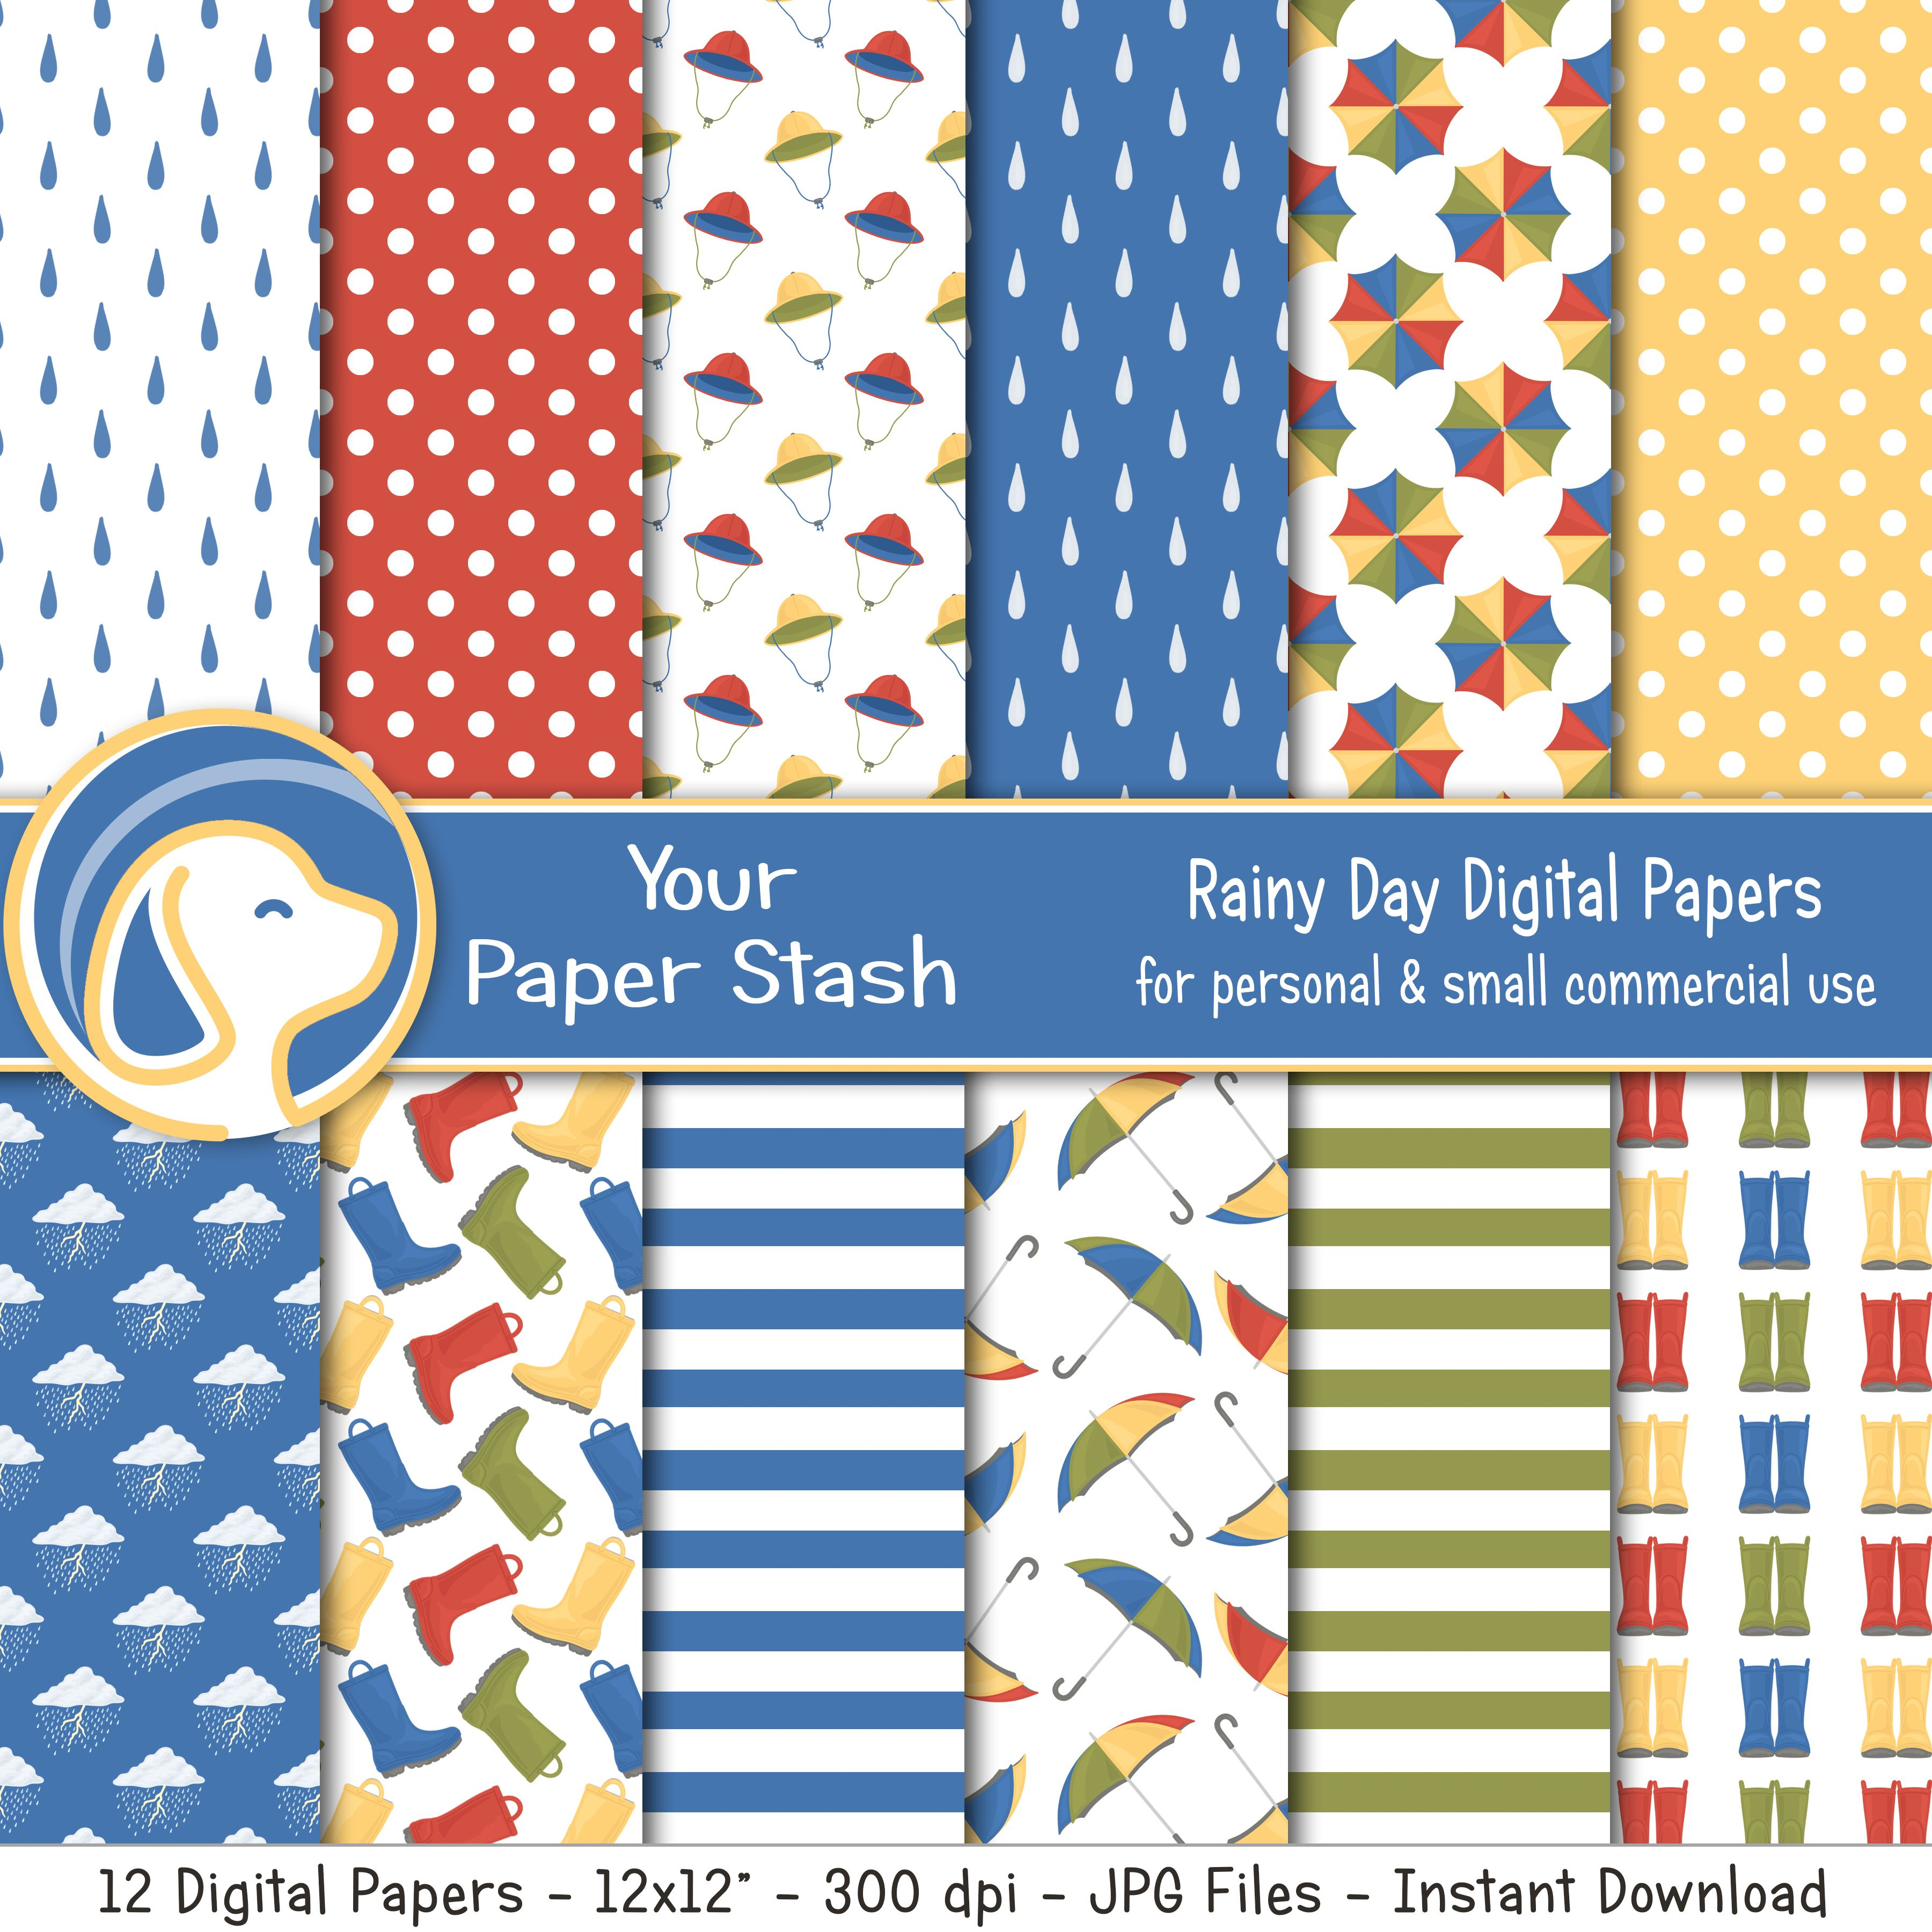 Rainy Day Digital Scrapbook Papers With Raindrops Rain Boots Umbrella Patterns April Showers Rainbow Digital Paper Pack In 2020 Digital Scrapbook Paper Scrapbook Paper Digital Paper